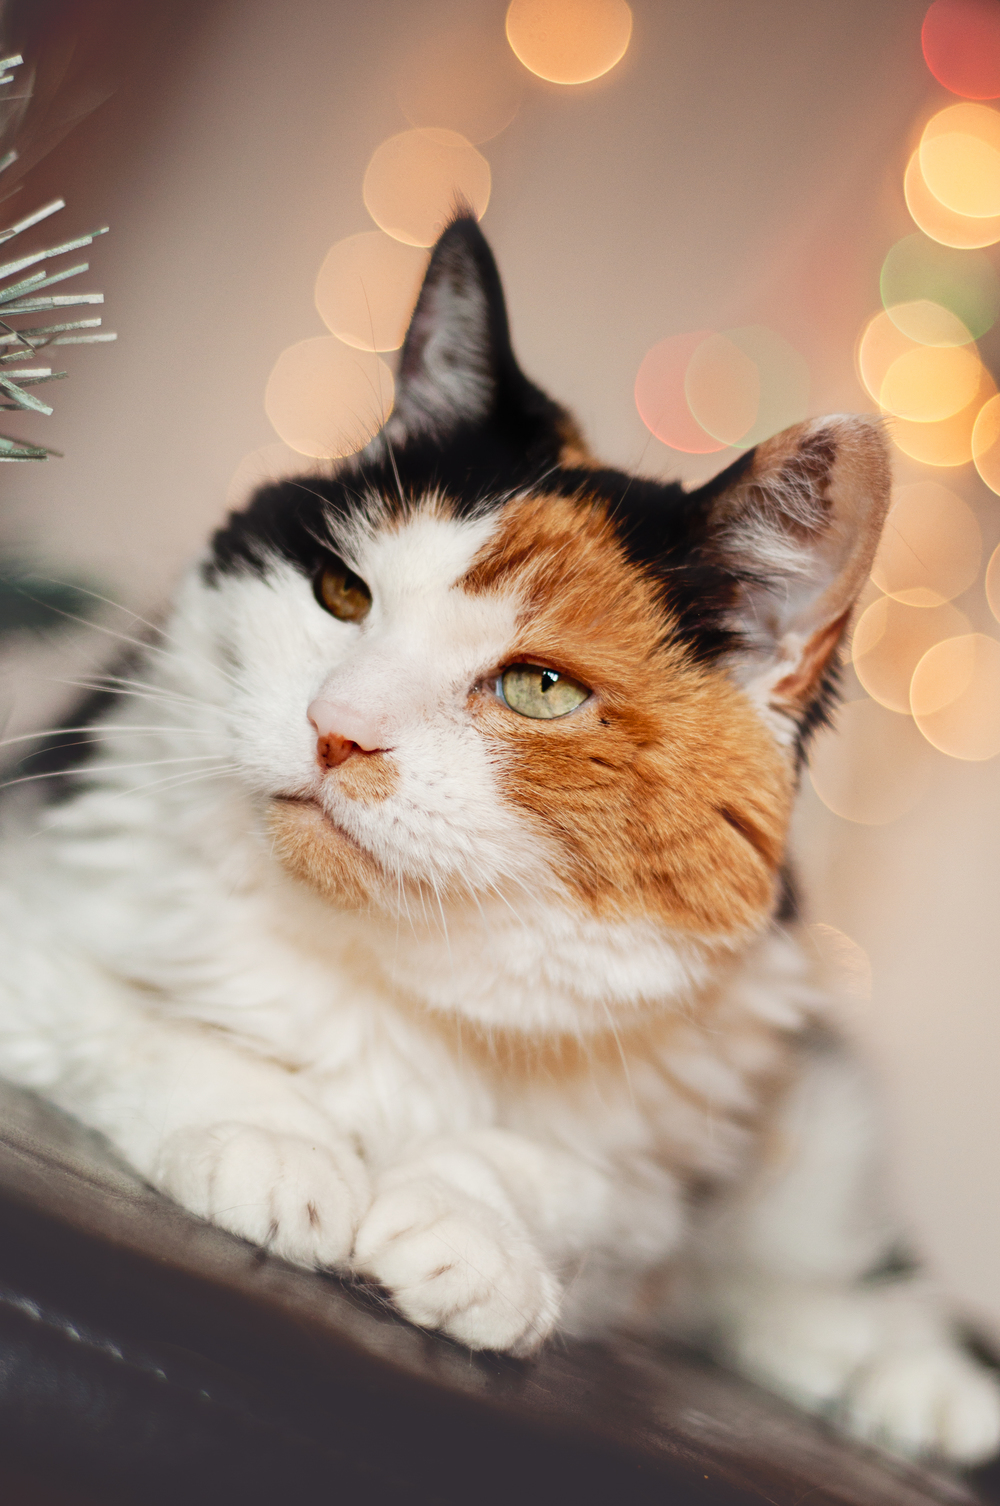 pet-photography-studio-natural-light-lifestyle-cat-holiday-long-island-photographer-digital.jpg